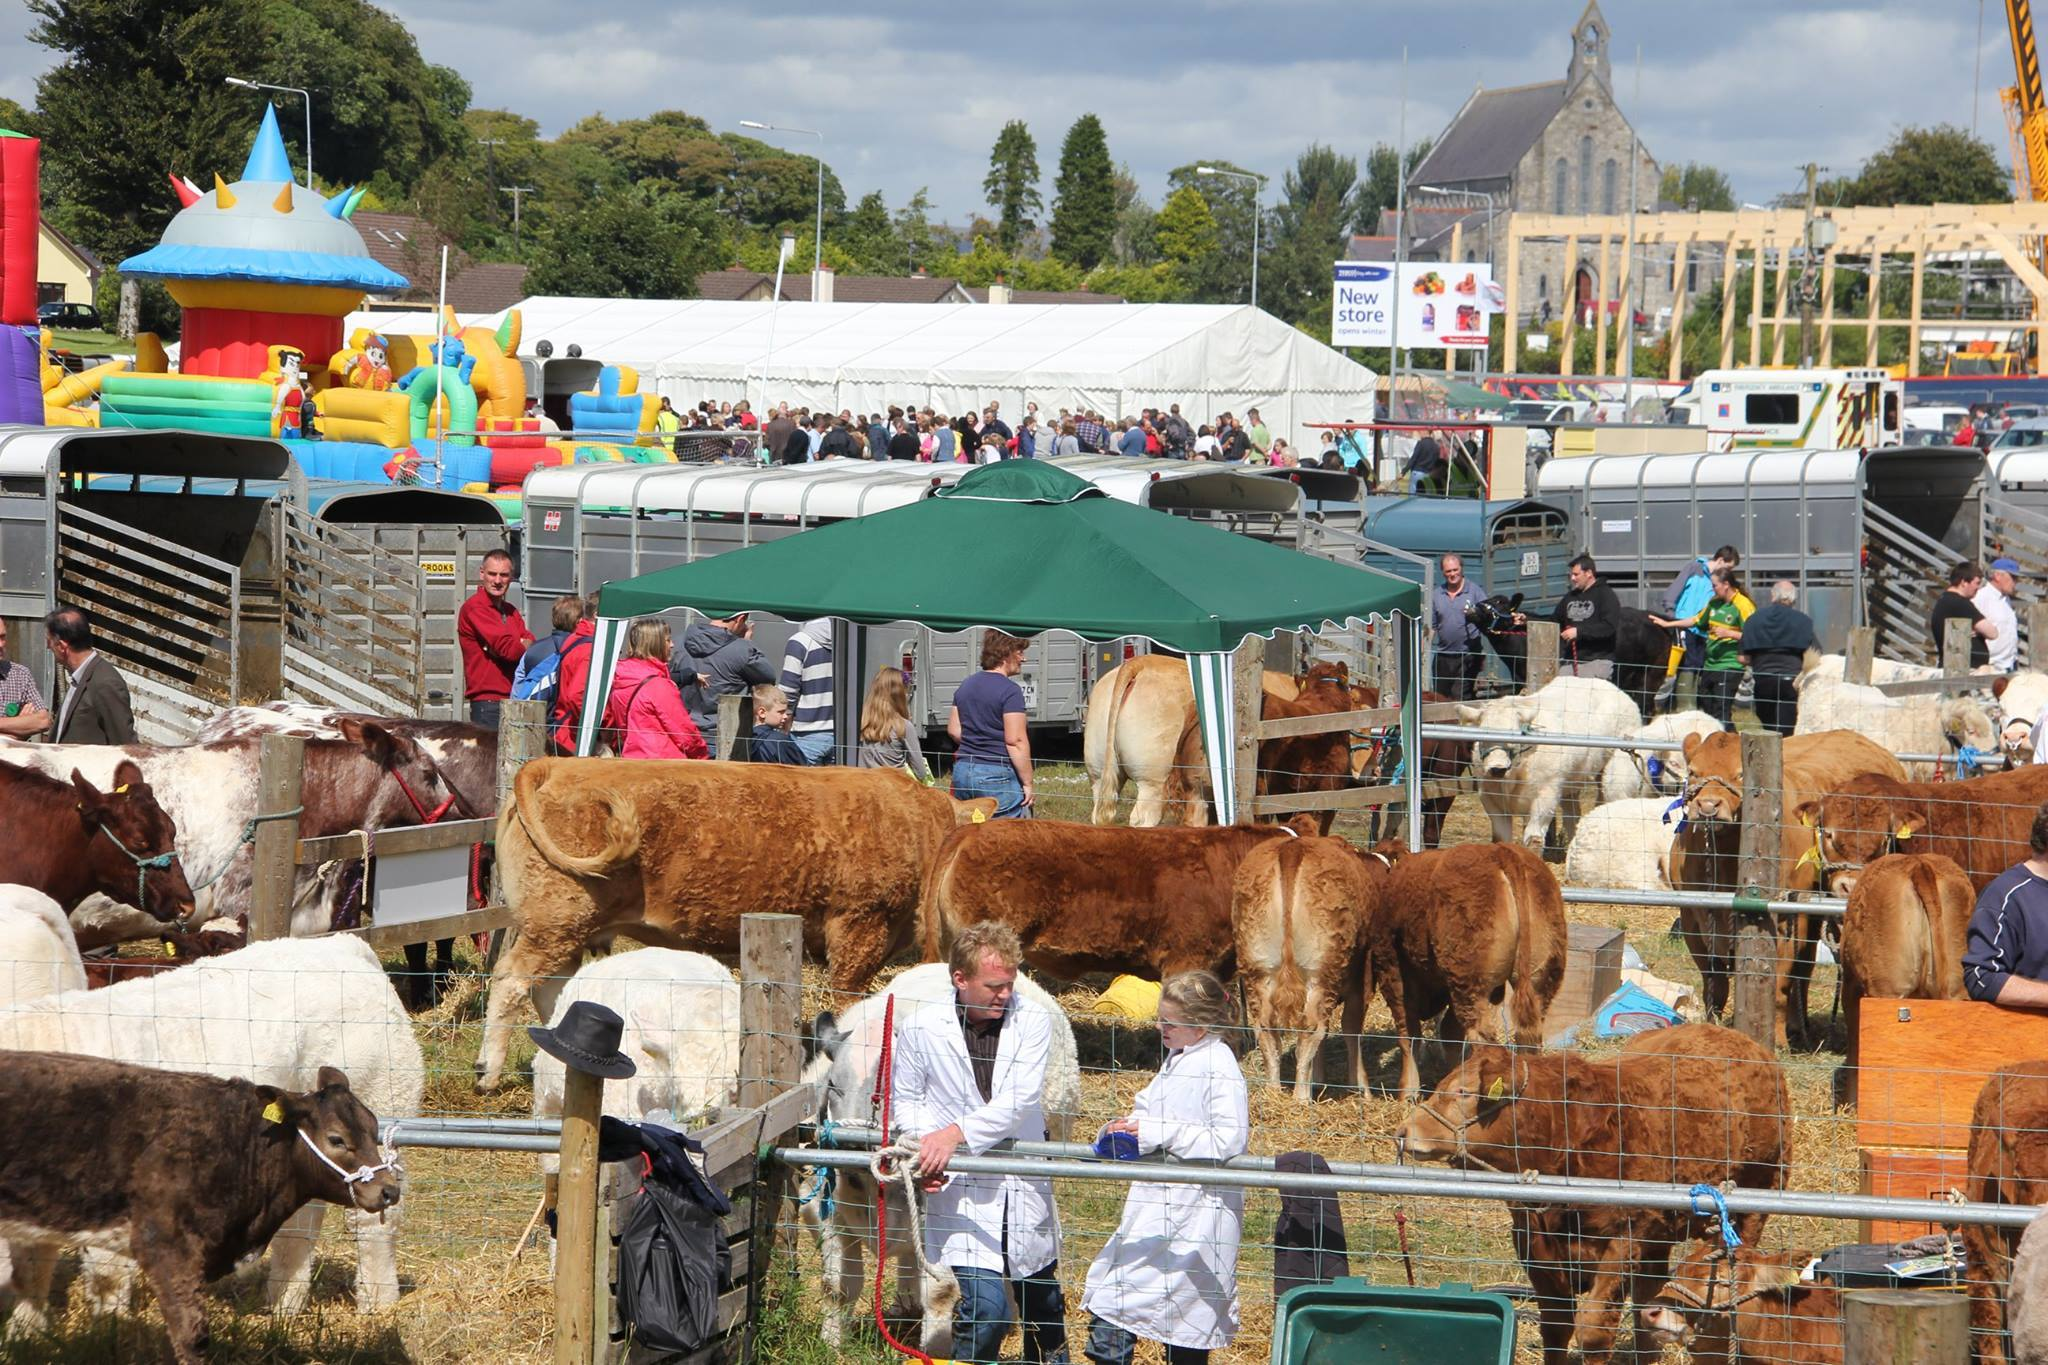 SSwinford Agricultural Show 2019